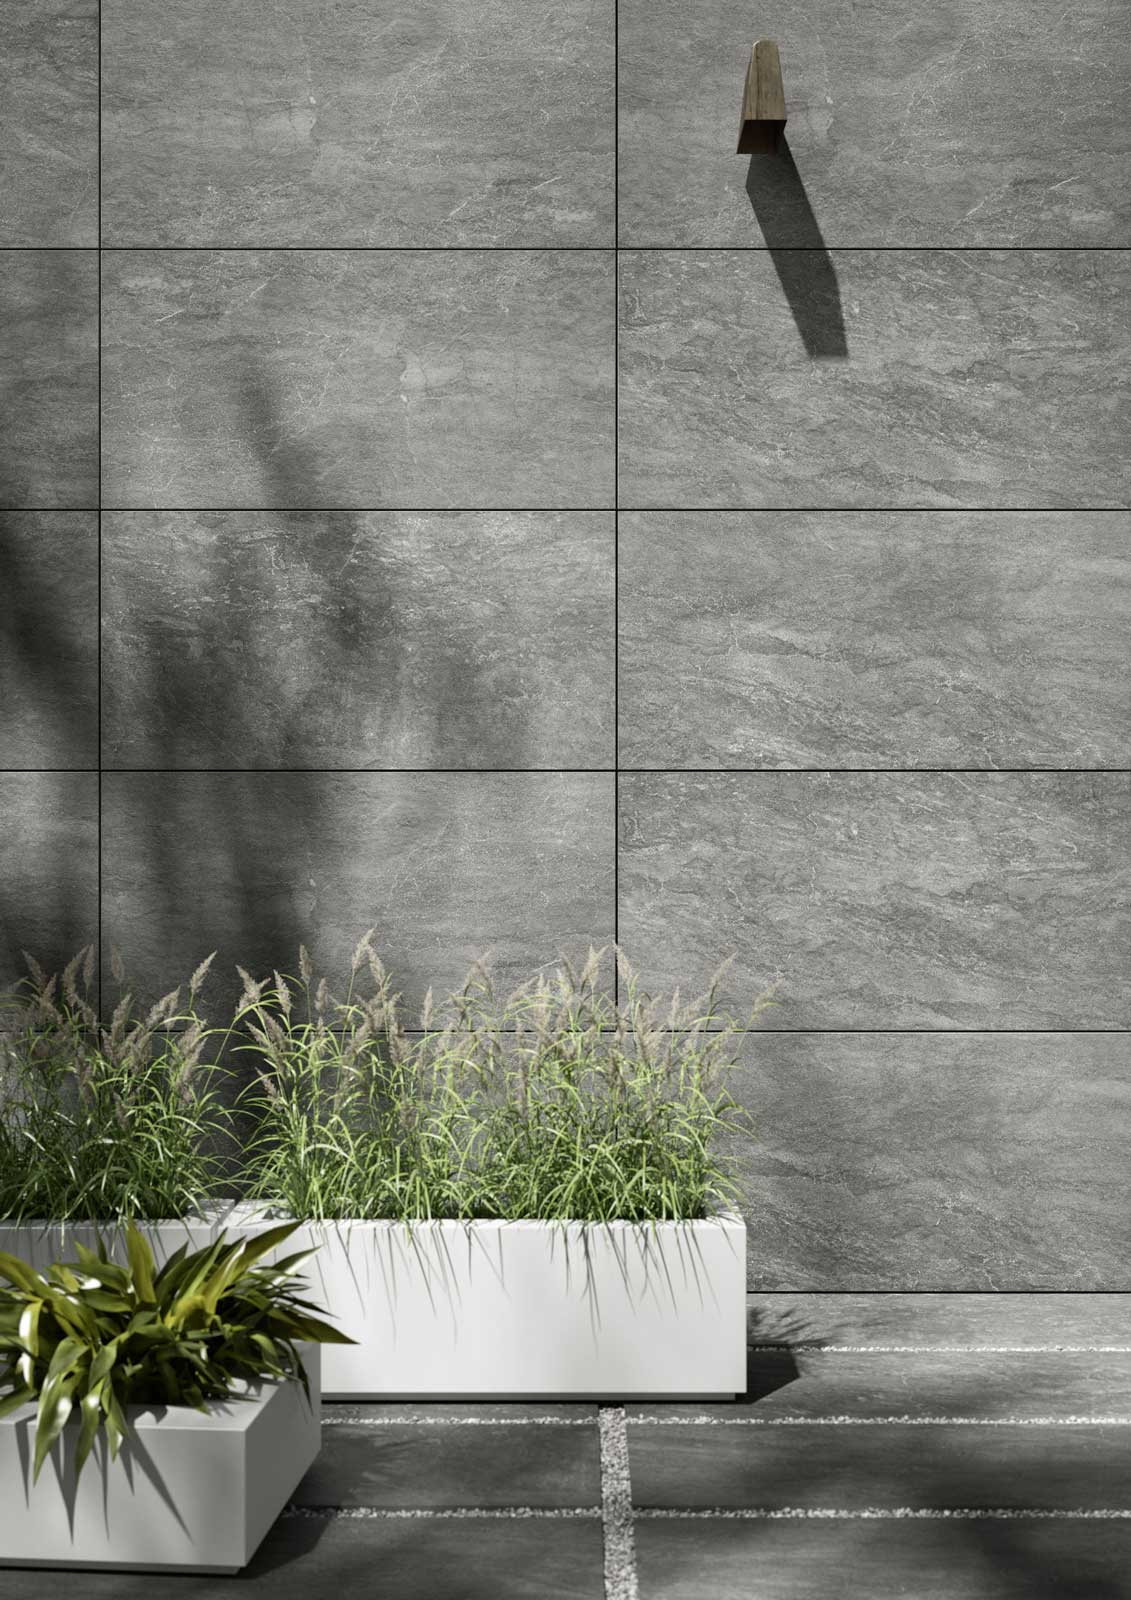 Outdoor tiles gardens and terraces marazzi outdoor tiles gardens and terraces marazzi 6396 doublecrazyfo Choice Image